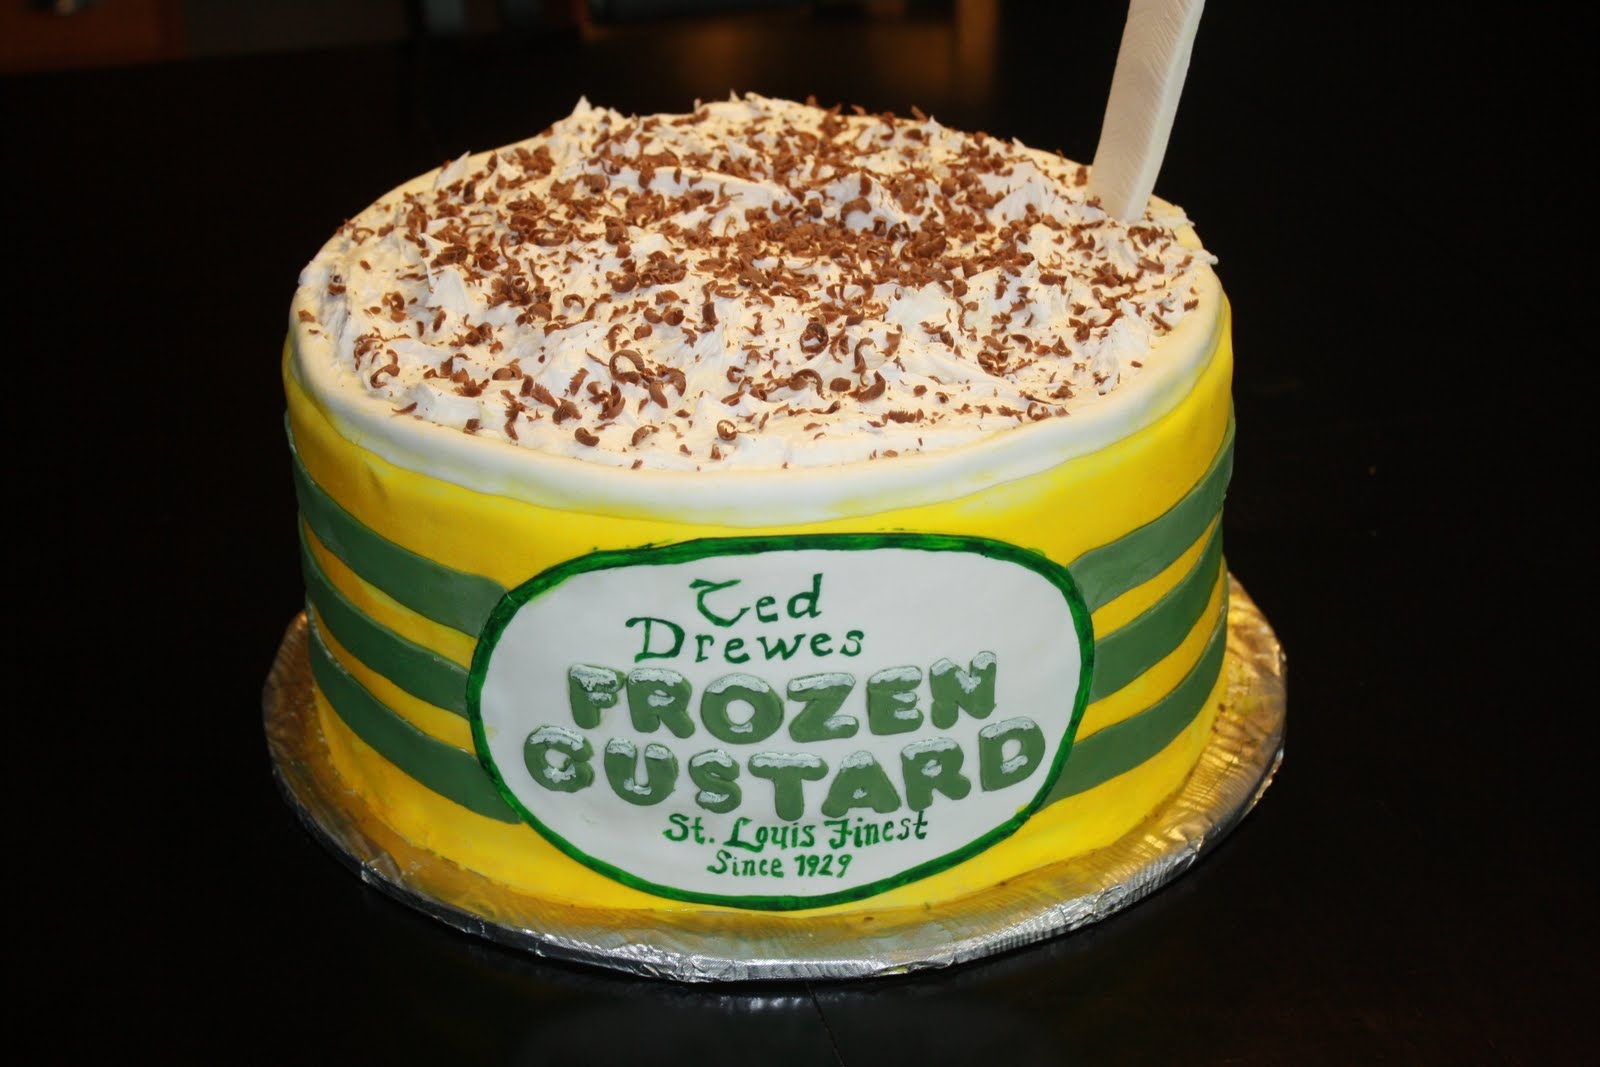 Hock Cakes LLC Ted Drewes Cup Cake